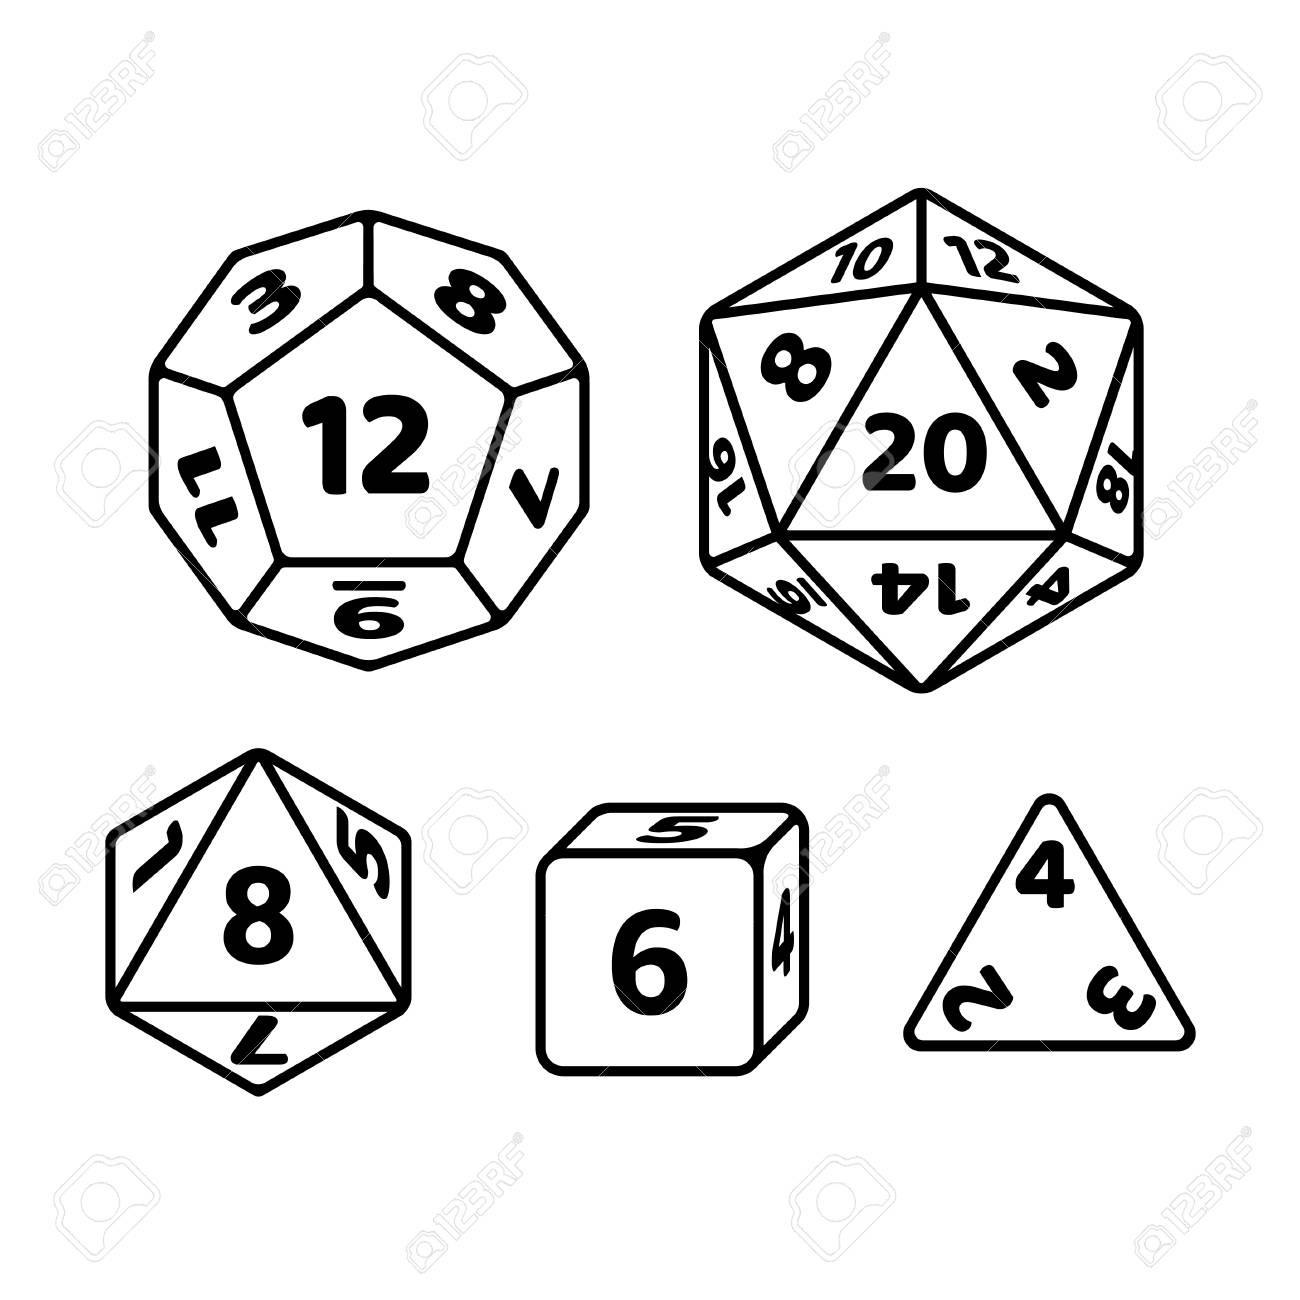 Set of polyhedron dice for fantasy RPG tabletop games. d20, d12, d8 and cube with numbers on sides. Black and white vector icons. - 110278181